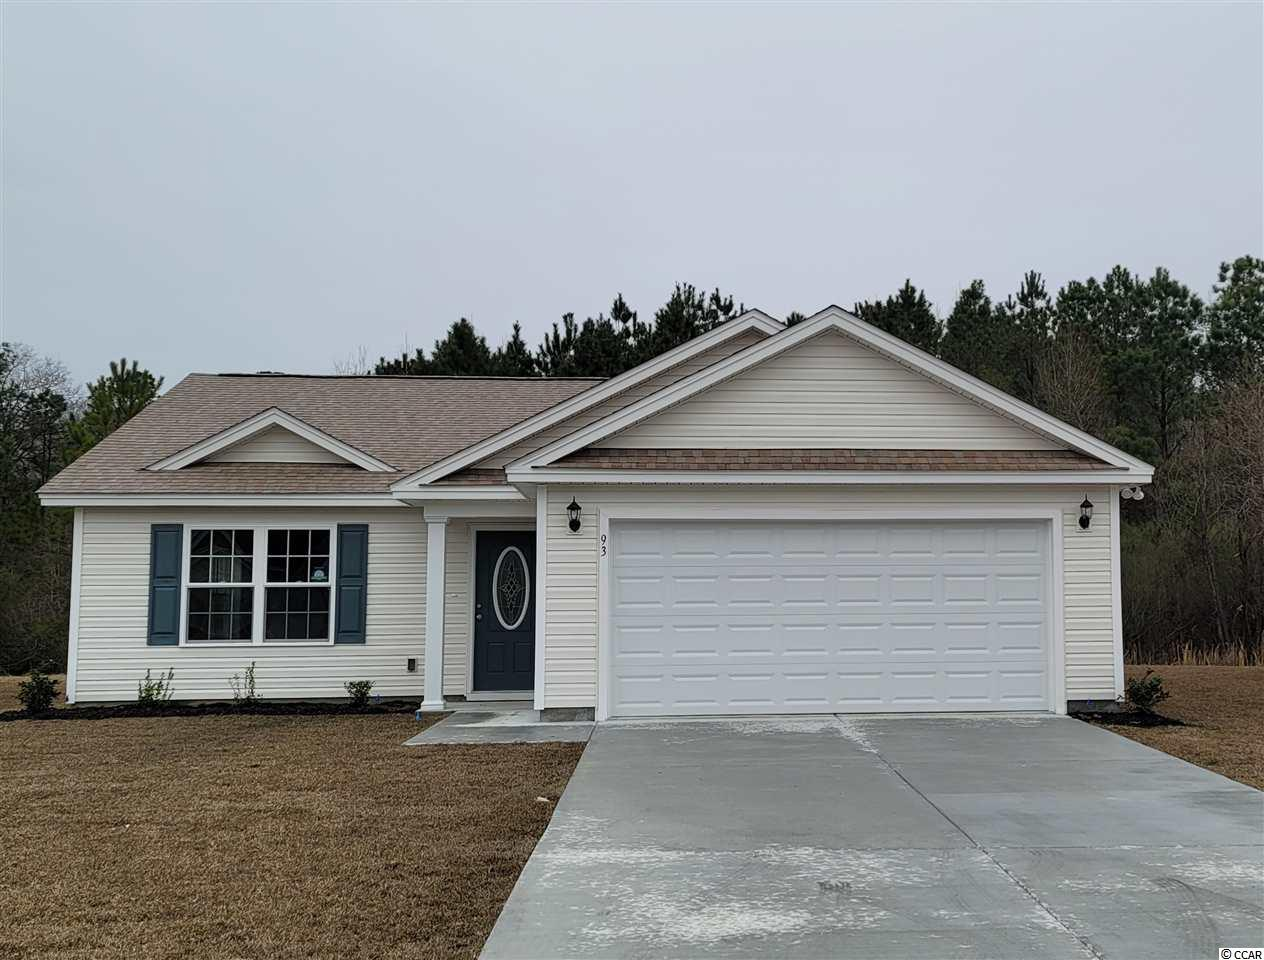 The Belle Model is a one level home with 3 BR 2 Bath, 1200+/- heated sq. ft.  An open floor plan that features a spacious and comfortable kitchen overlooking the living room. This homes features includes but are not limited to: Low Maintenance Exterior Vinyl Siding. 30 Yr - Architectural shingles , Low E- Vinyl windows Large 2 Car Garage. Open Kitchen with Stainless Steel Appliances, Spacious Bedrooms,  5 ft. walk-in shower in Master Bathroom -  cultured marble vanity top in bathrooms. Pictures are of a similar plan model home and are for illustration purposes only. Beverly homes offers home customization and floor plan changes. Georgetown Estates is a premier community conveniently located along HWY 521,  easily access both  downtown Andrews and the Historic Georgetown, SC.  sidewalks wind throughout the community.  Huge oaks and beautiful mature trees surround this gorgeous new community. Come experience the beautiful and sweet life that the low country of South Carolina and Georgetown Estates has to offer! Beverly Homes is a equal opportunity Builder.